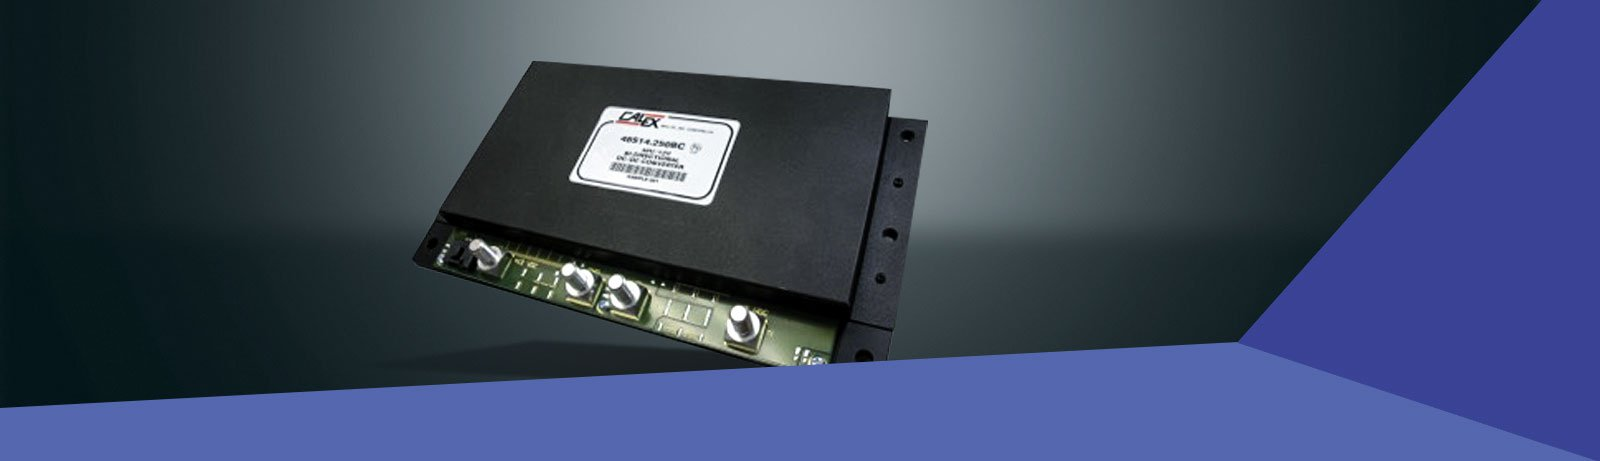 Compact 3500W Bi-Directional DC/DC converter for Micro Hybrid Automotive Applications